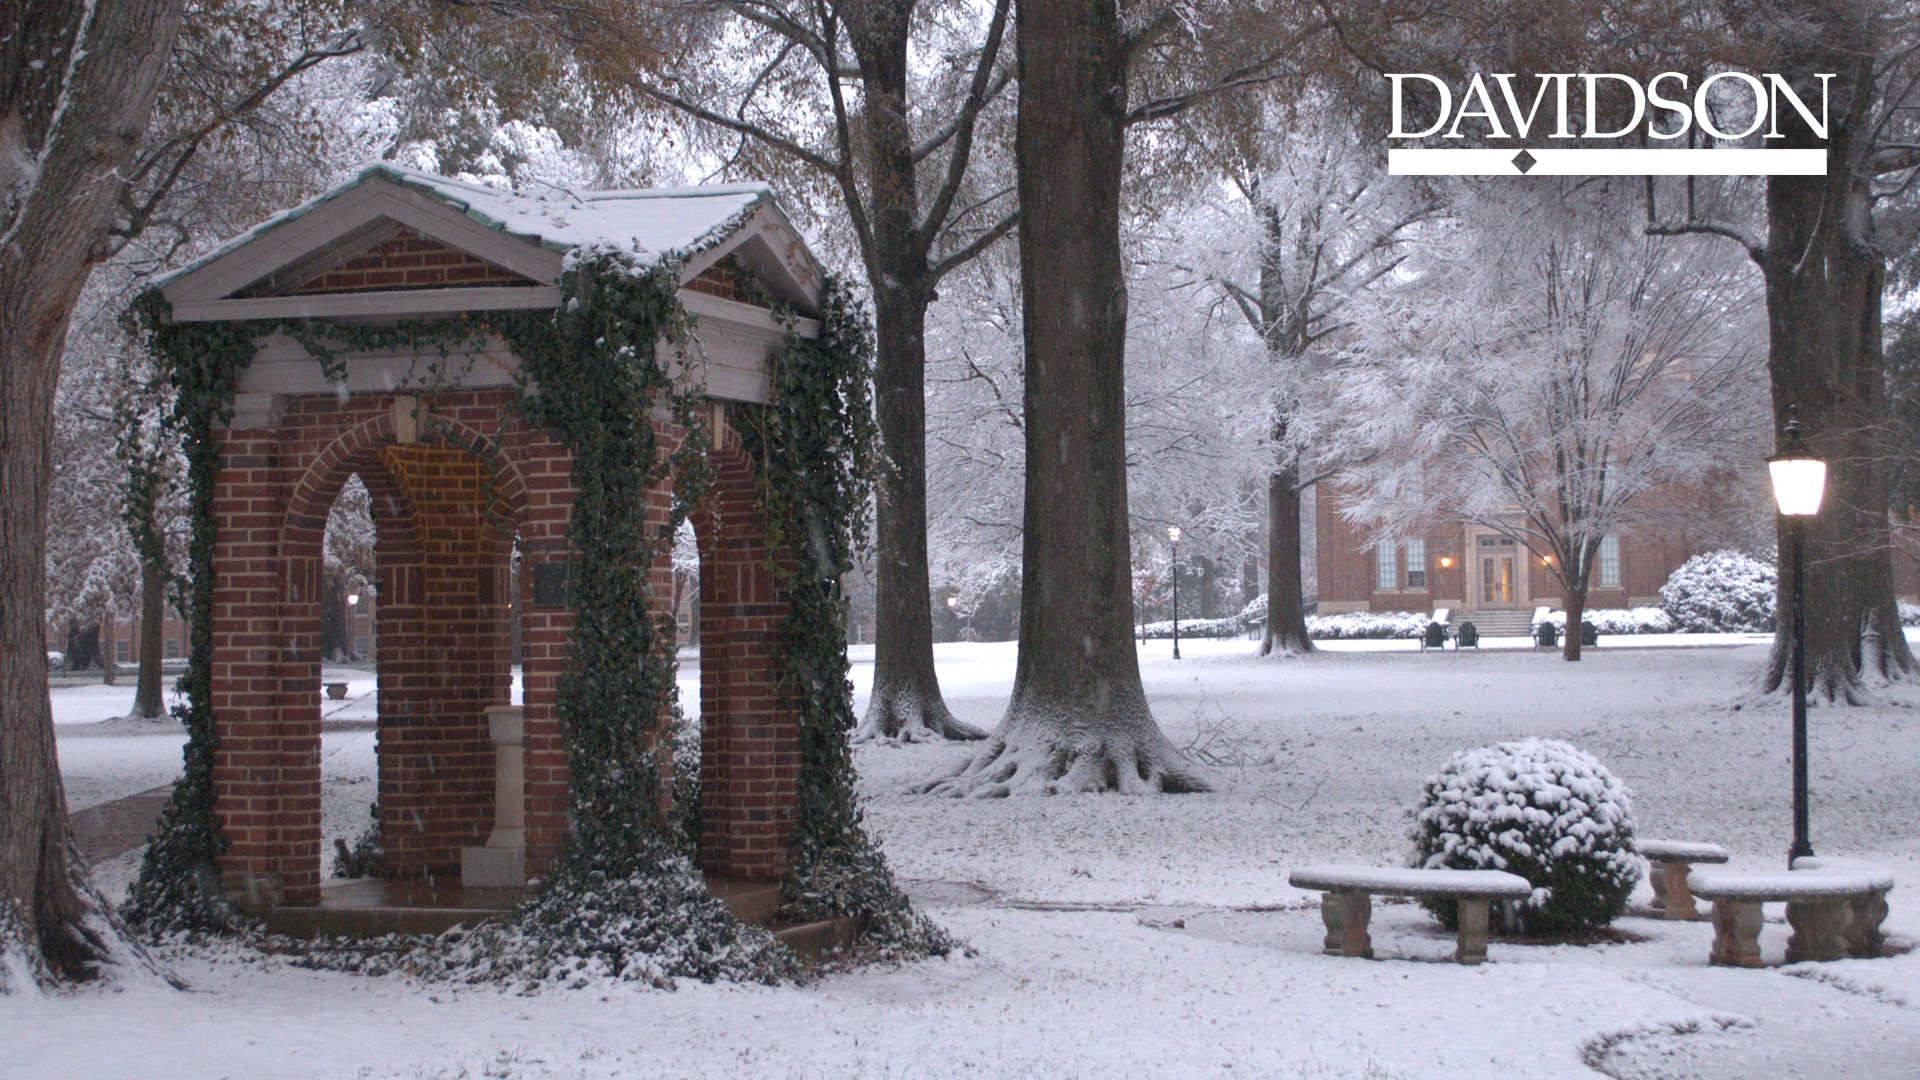 President's House during snow and Davidson True Wordmark